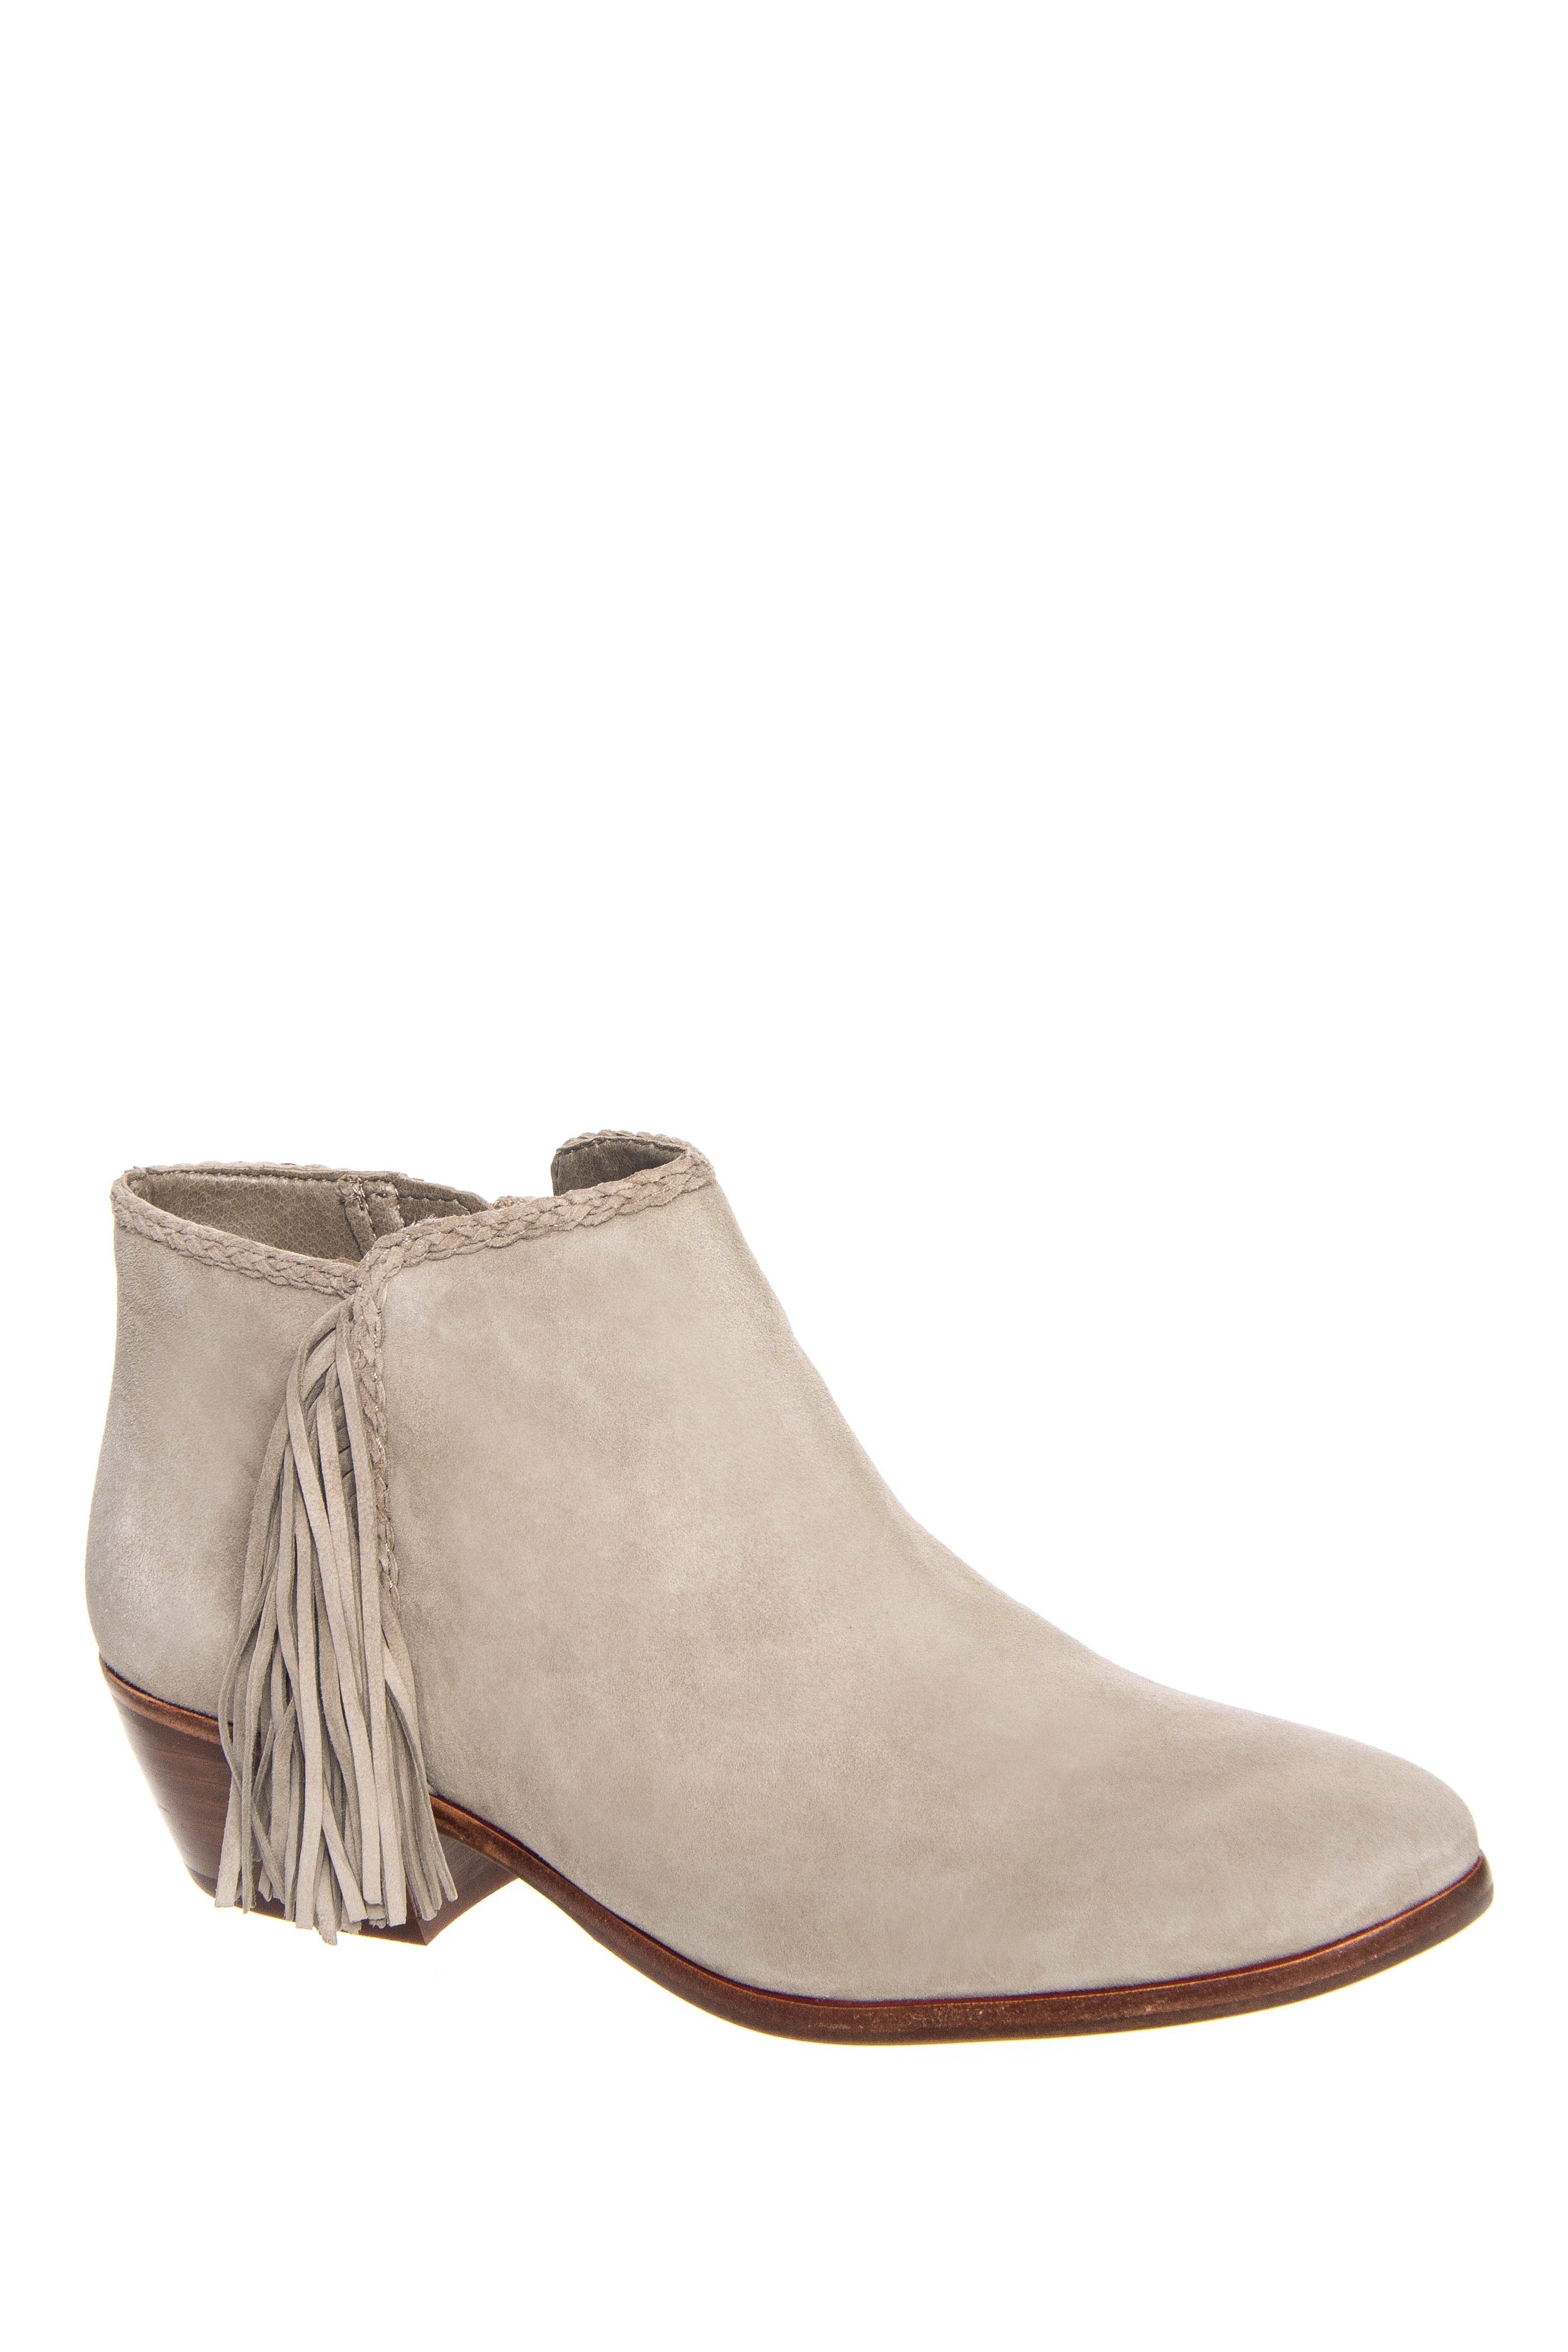 Sam Edelman Paige Low Heel Booties